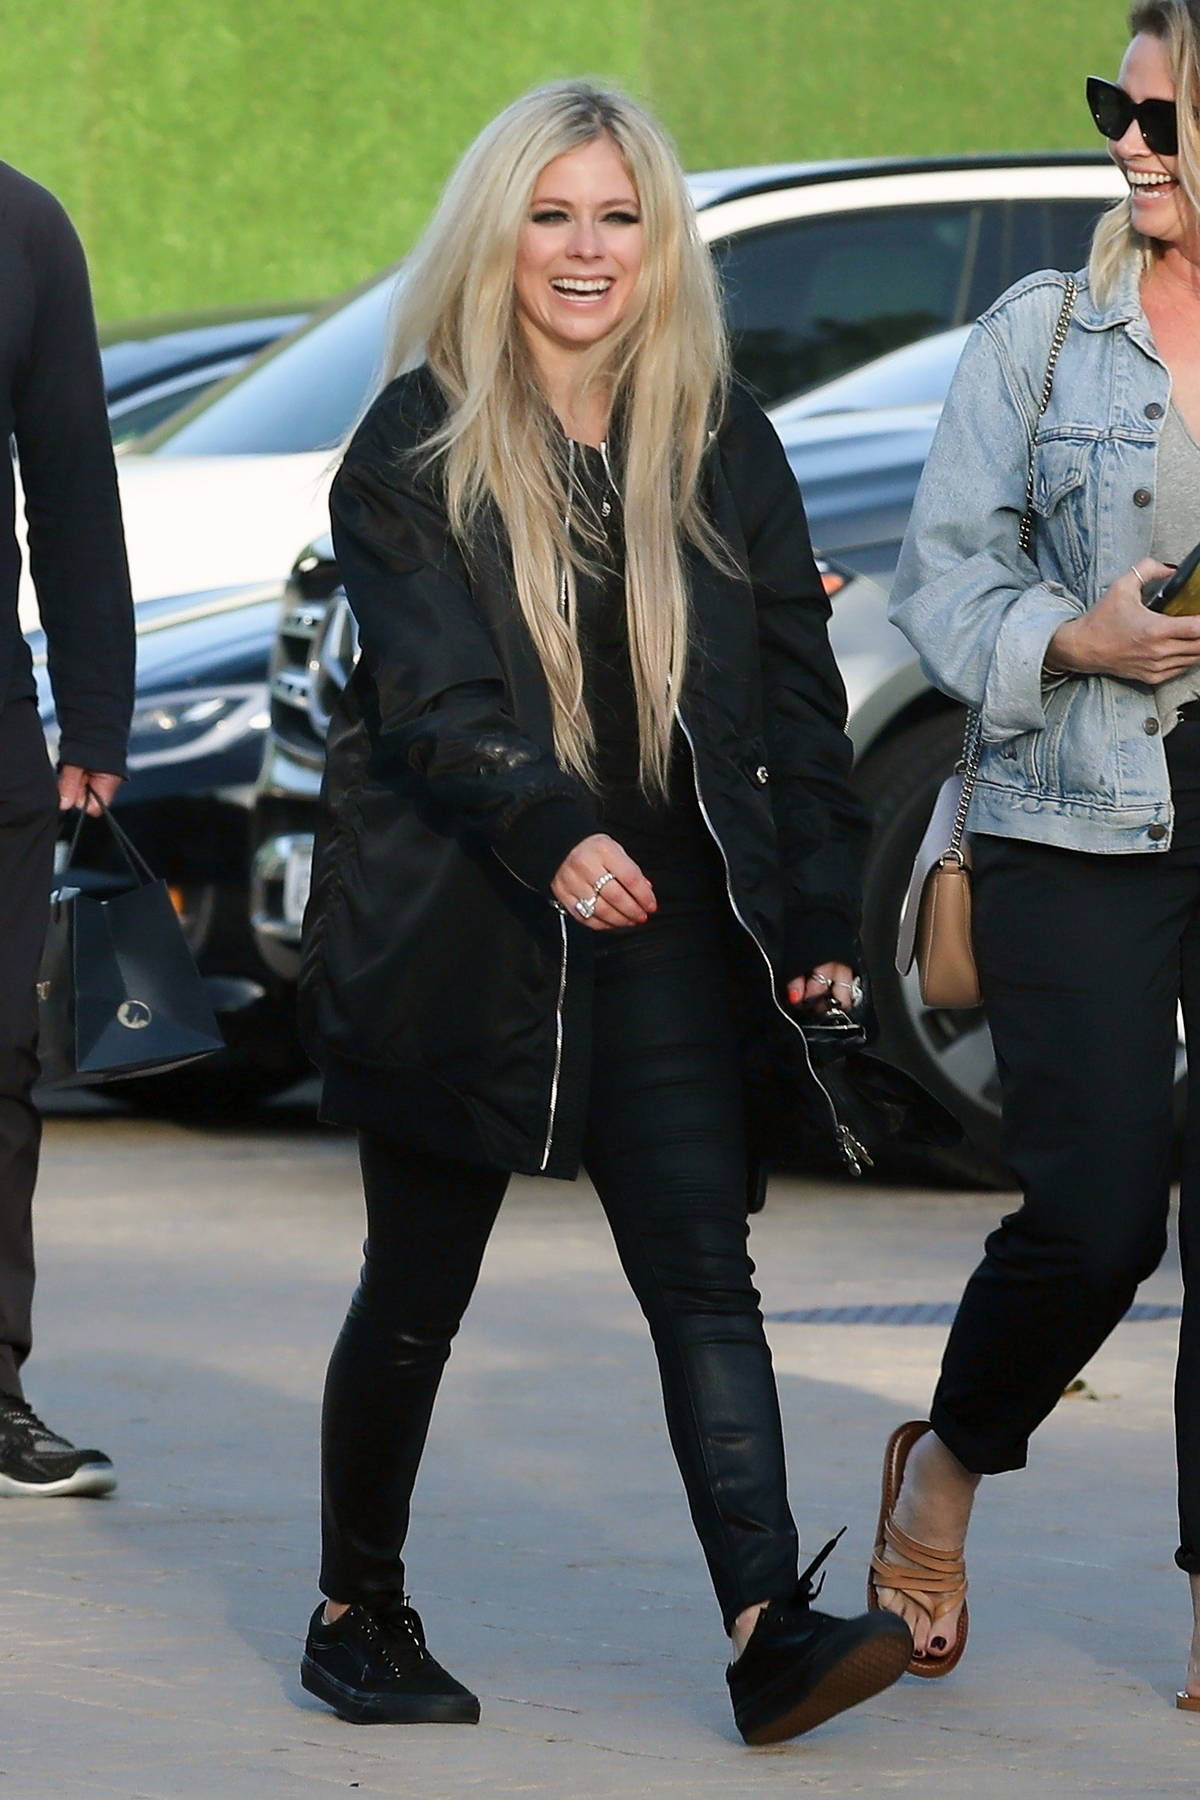 Avril Lavigne is all smiles after wrapping up dinner at Nobu in Malibu, California